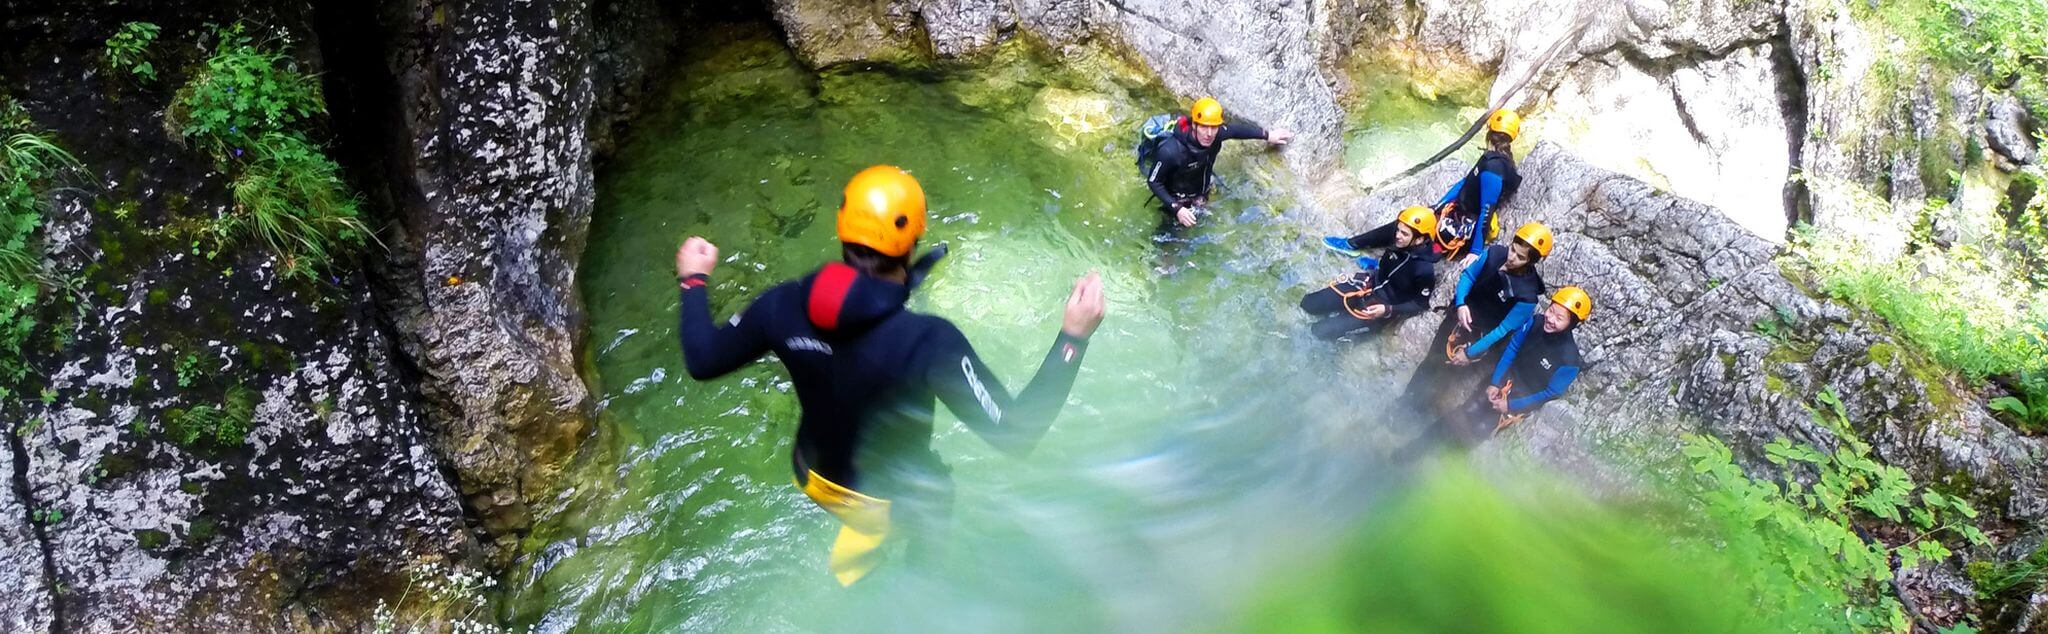 Canyoning in Zamora